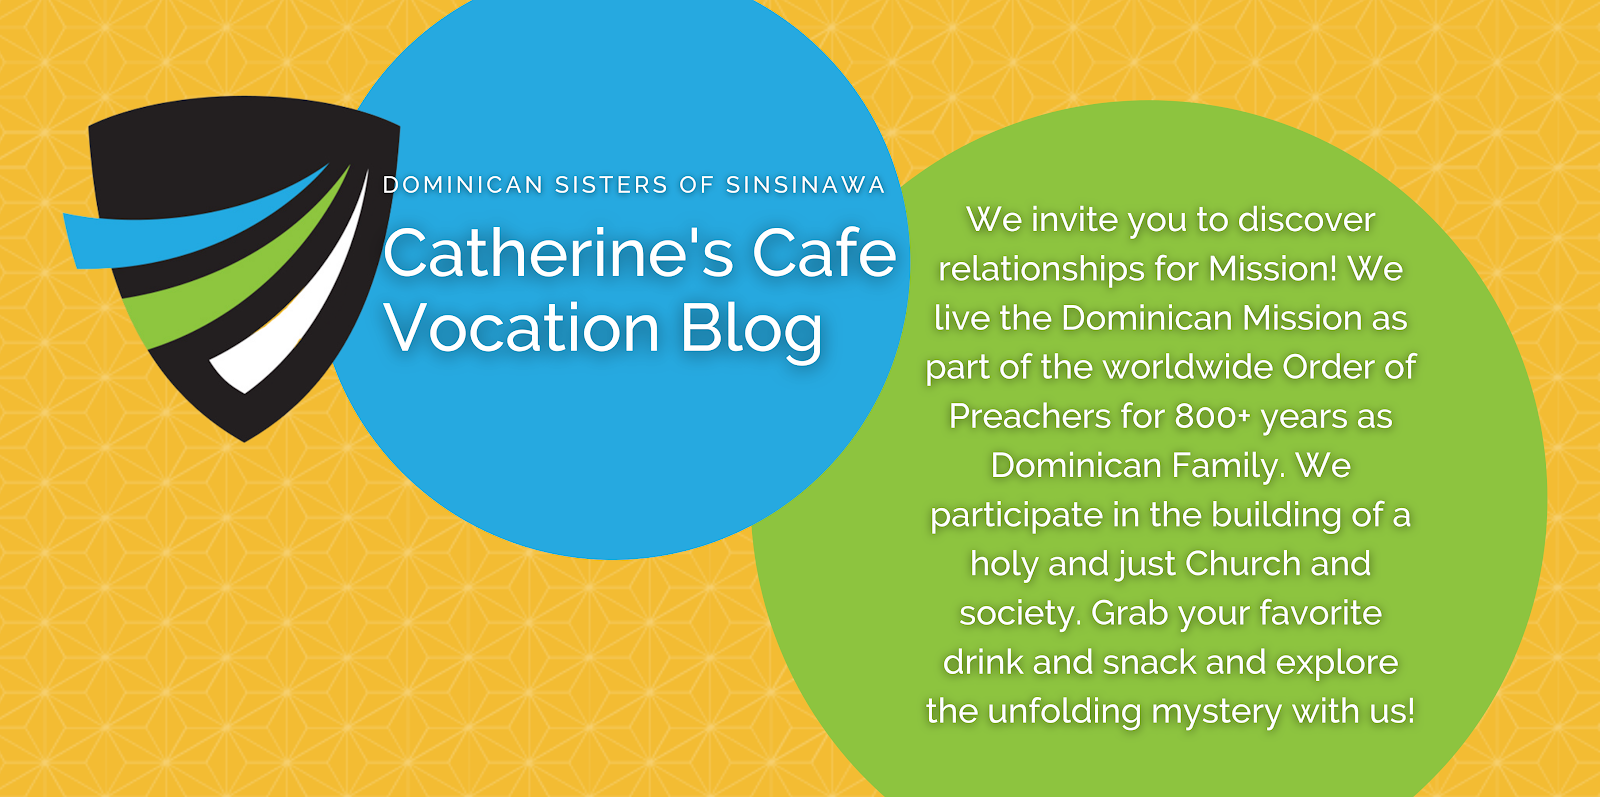 Catherine's Cafe Vocation Blog